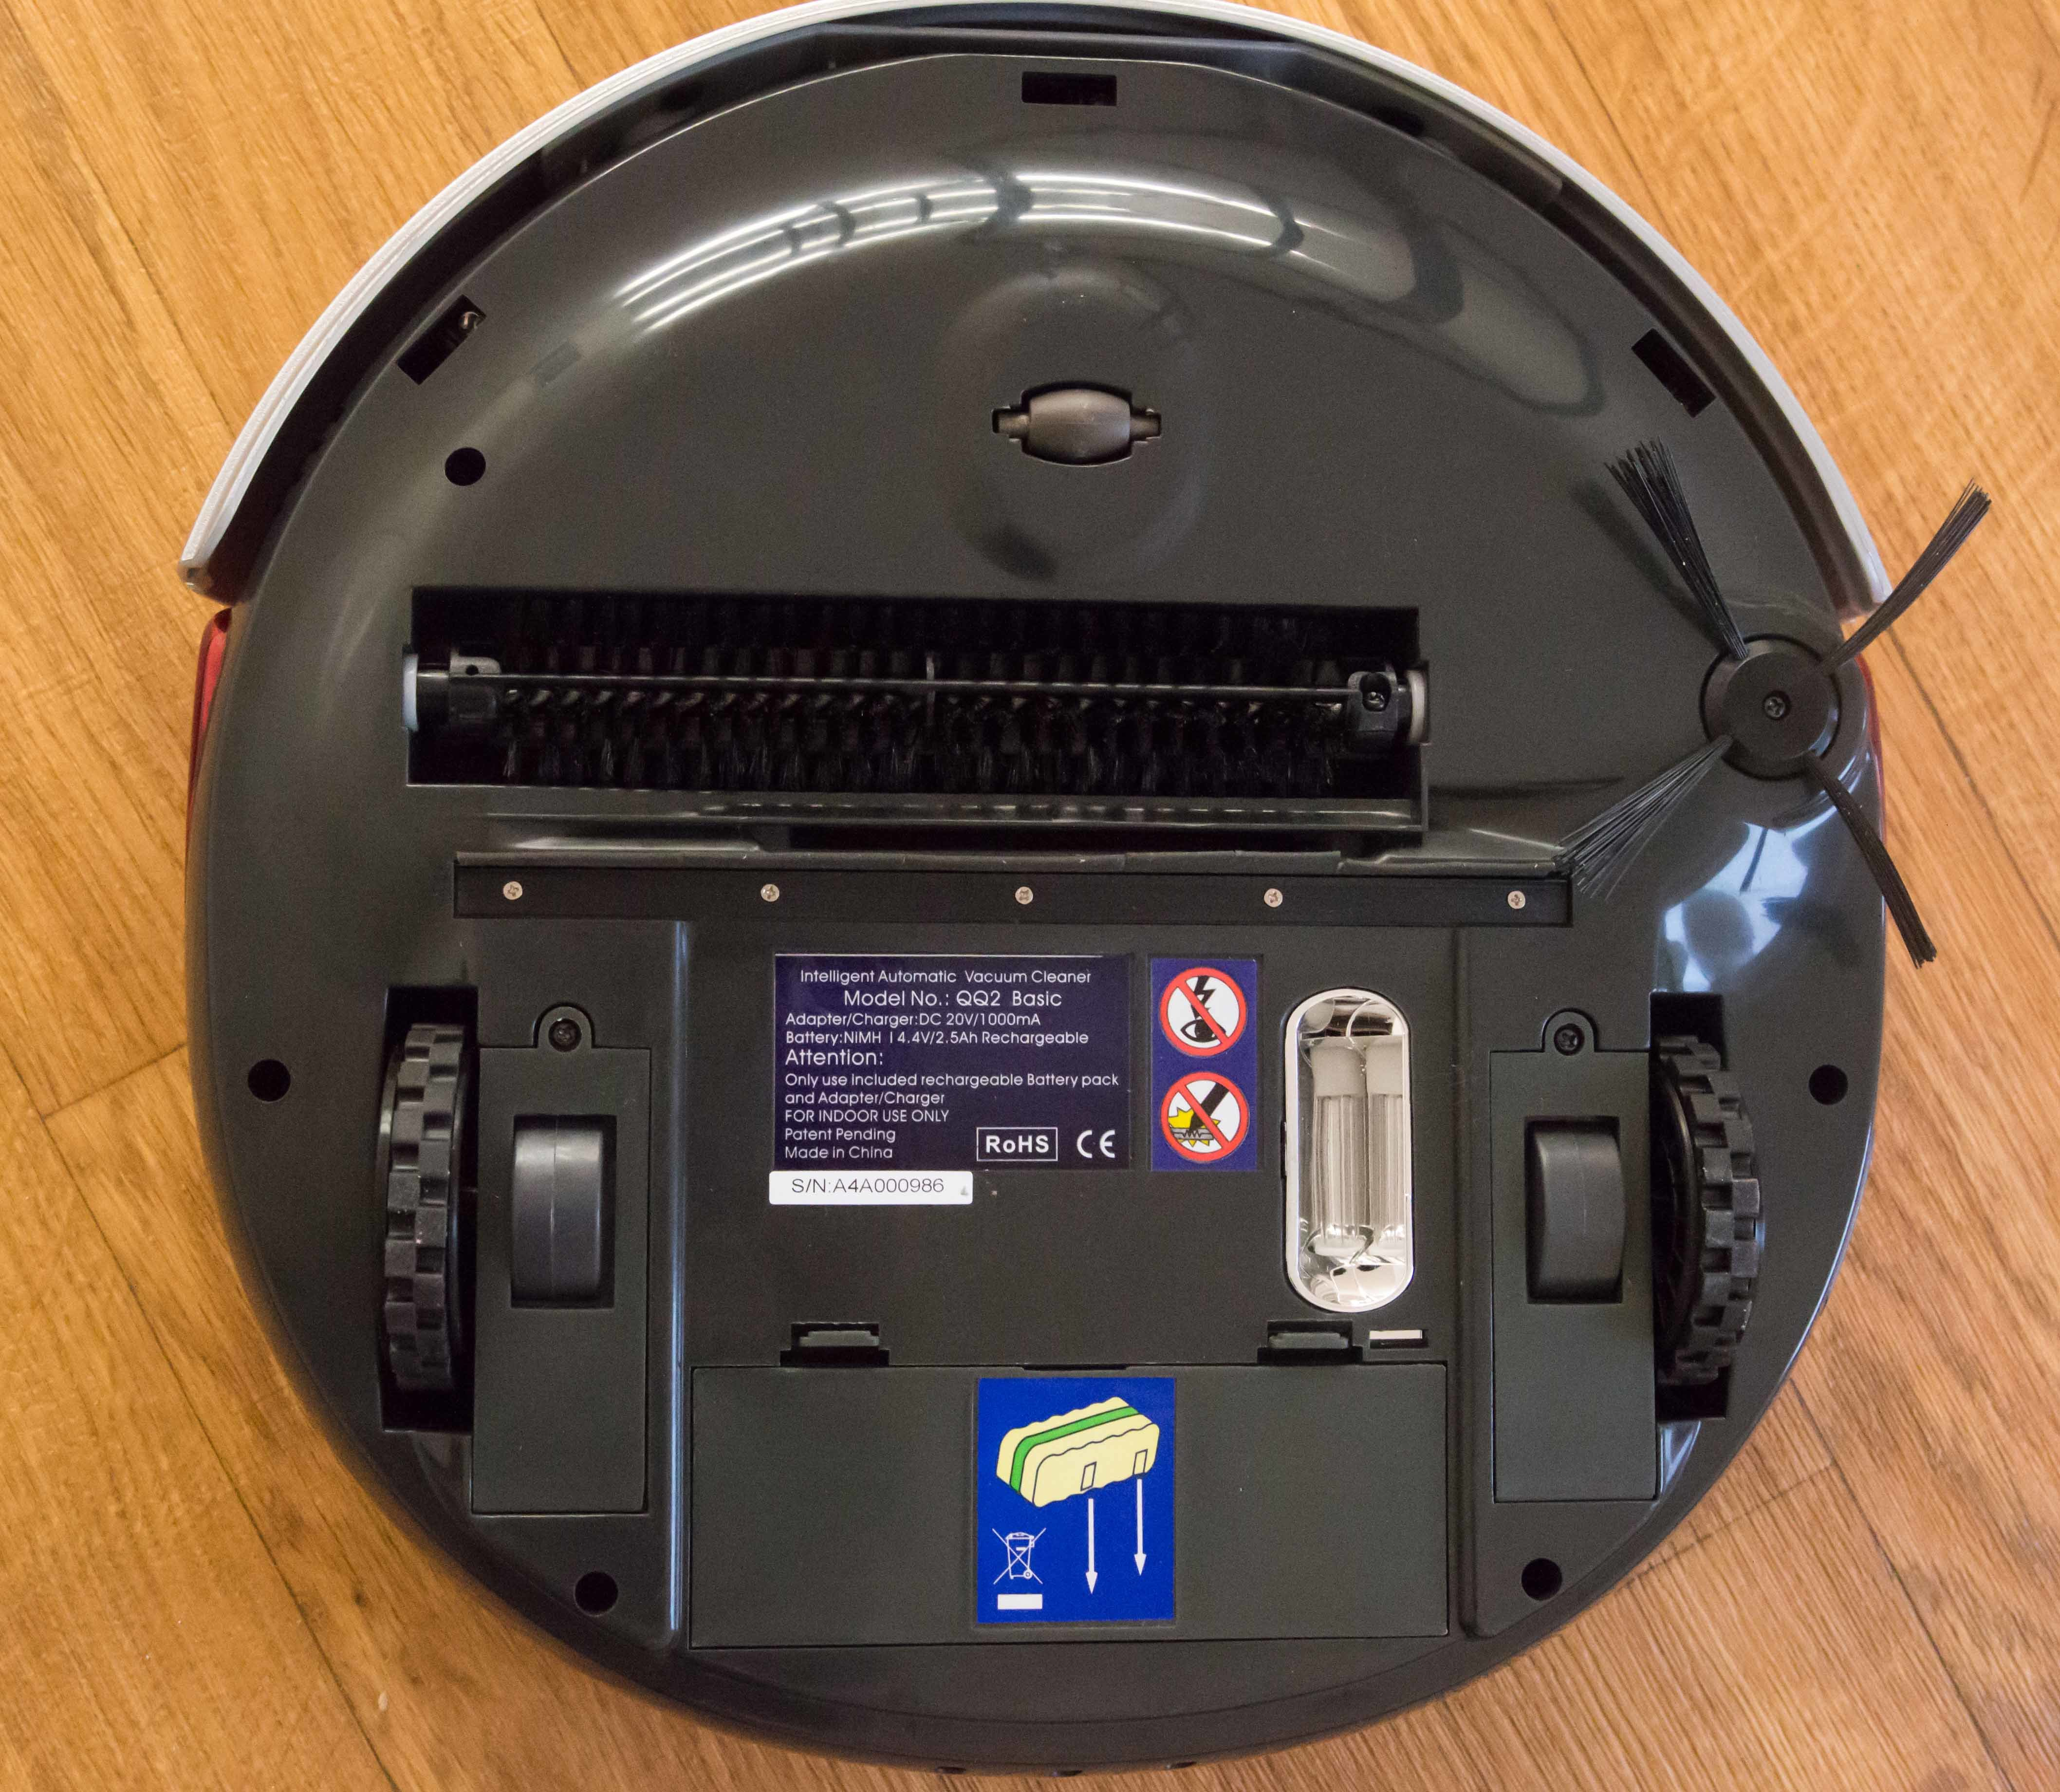 The QQ-2 has a UV light that helps sanitize the floor.